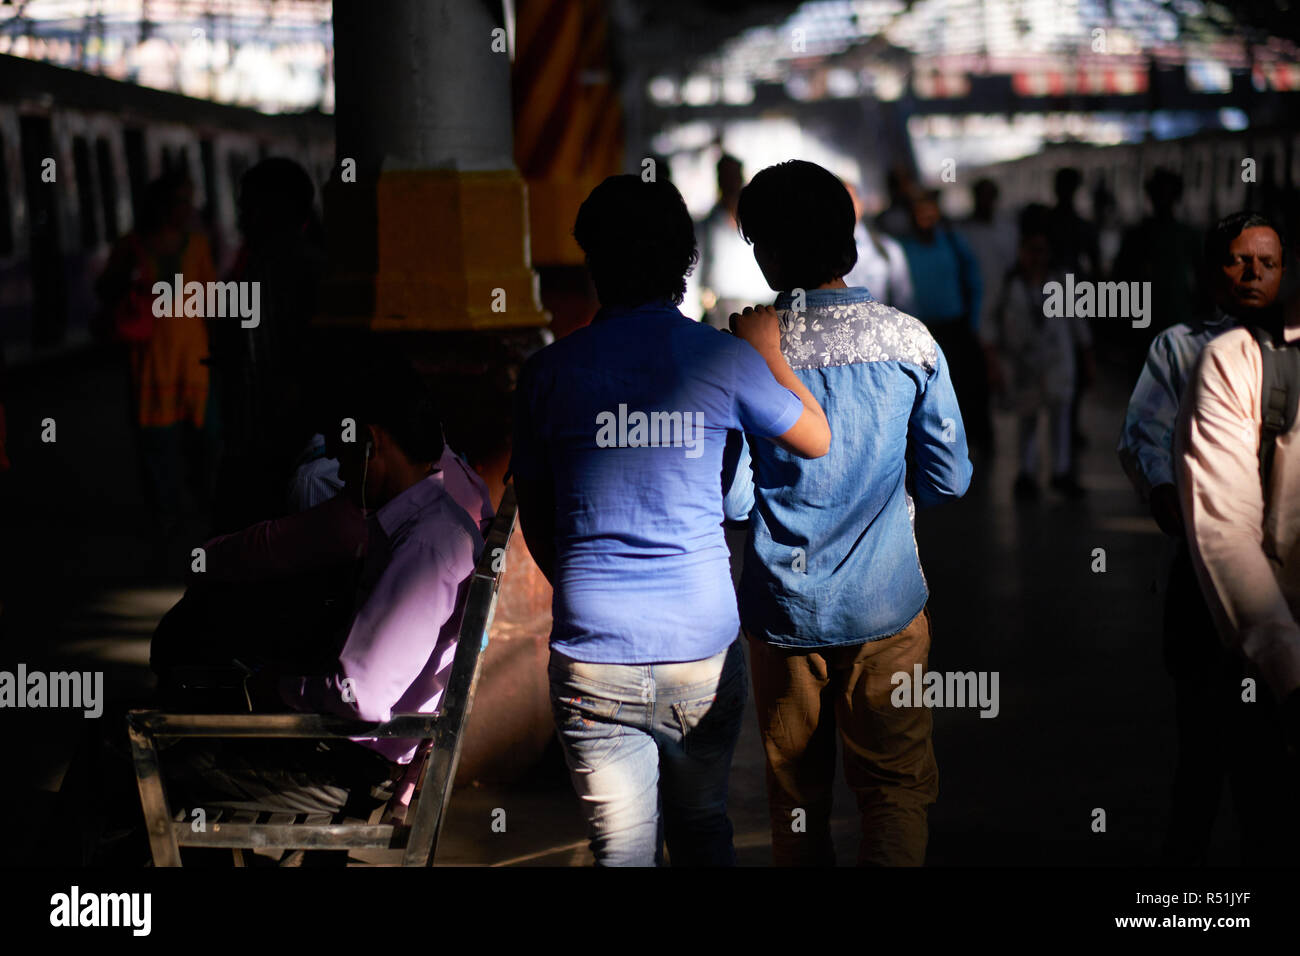 Two close friends on a platform at Chhatrapati Shivaji Maharaj Terminus (CSMT), the busiest rail station in Mumbai, India, and a UNESCO heritage site - Stock Image